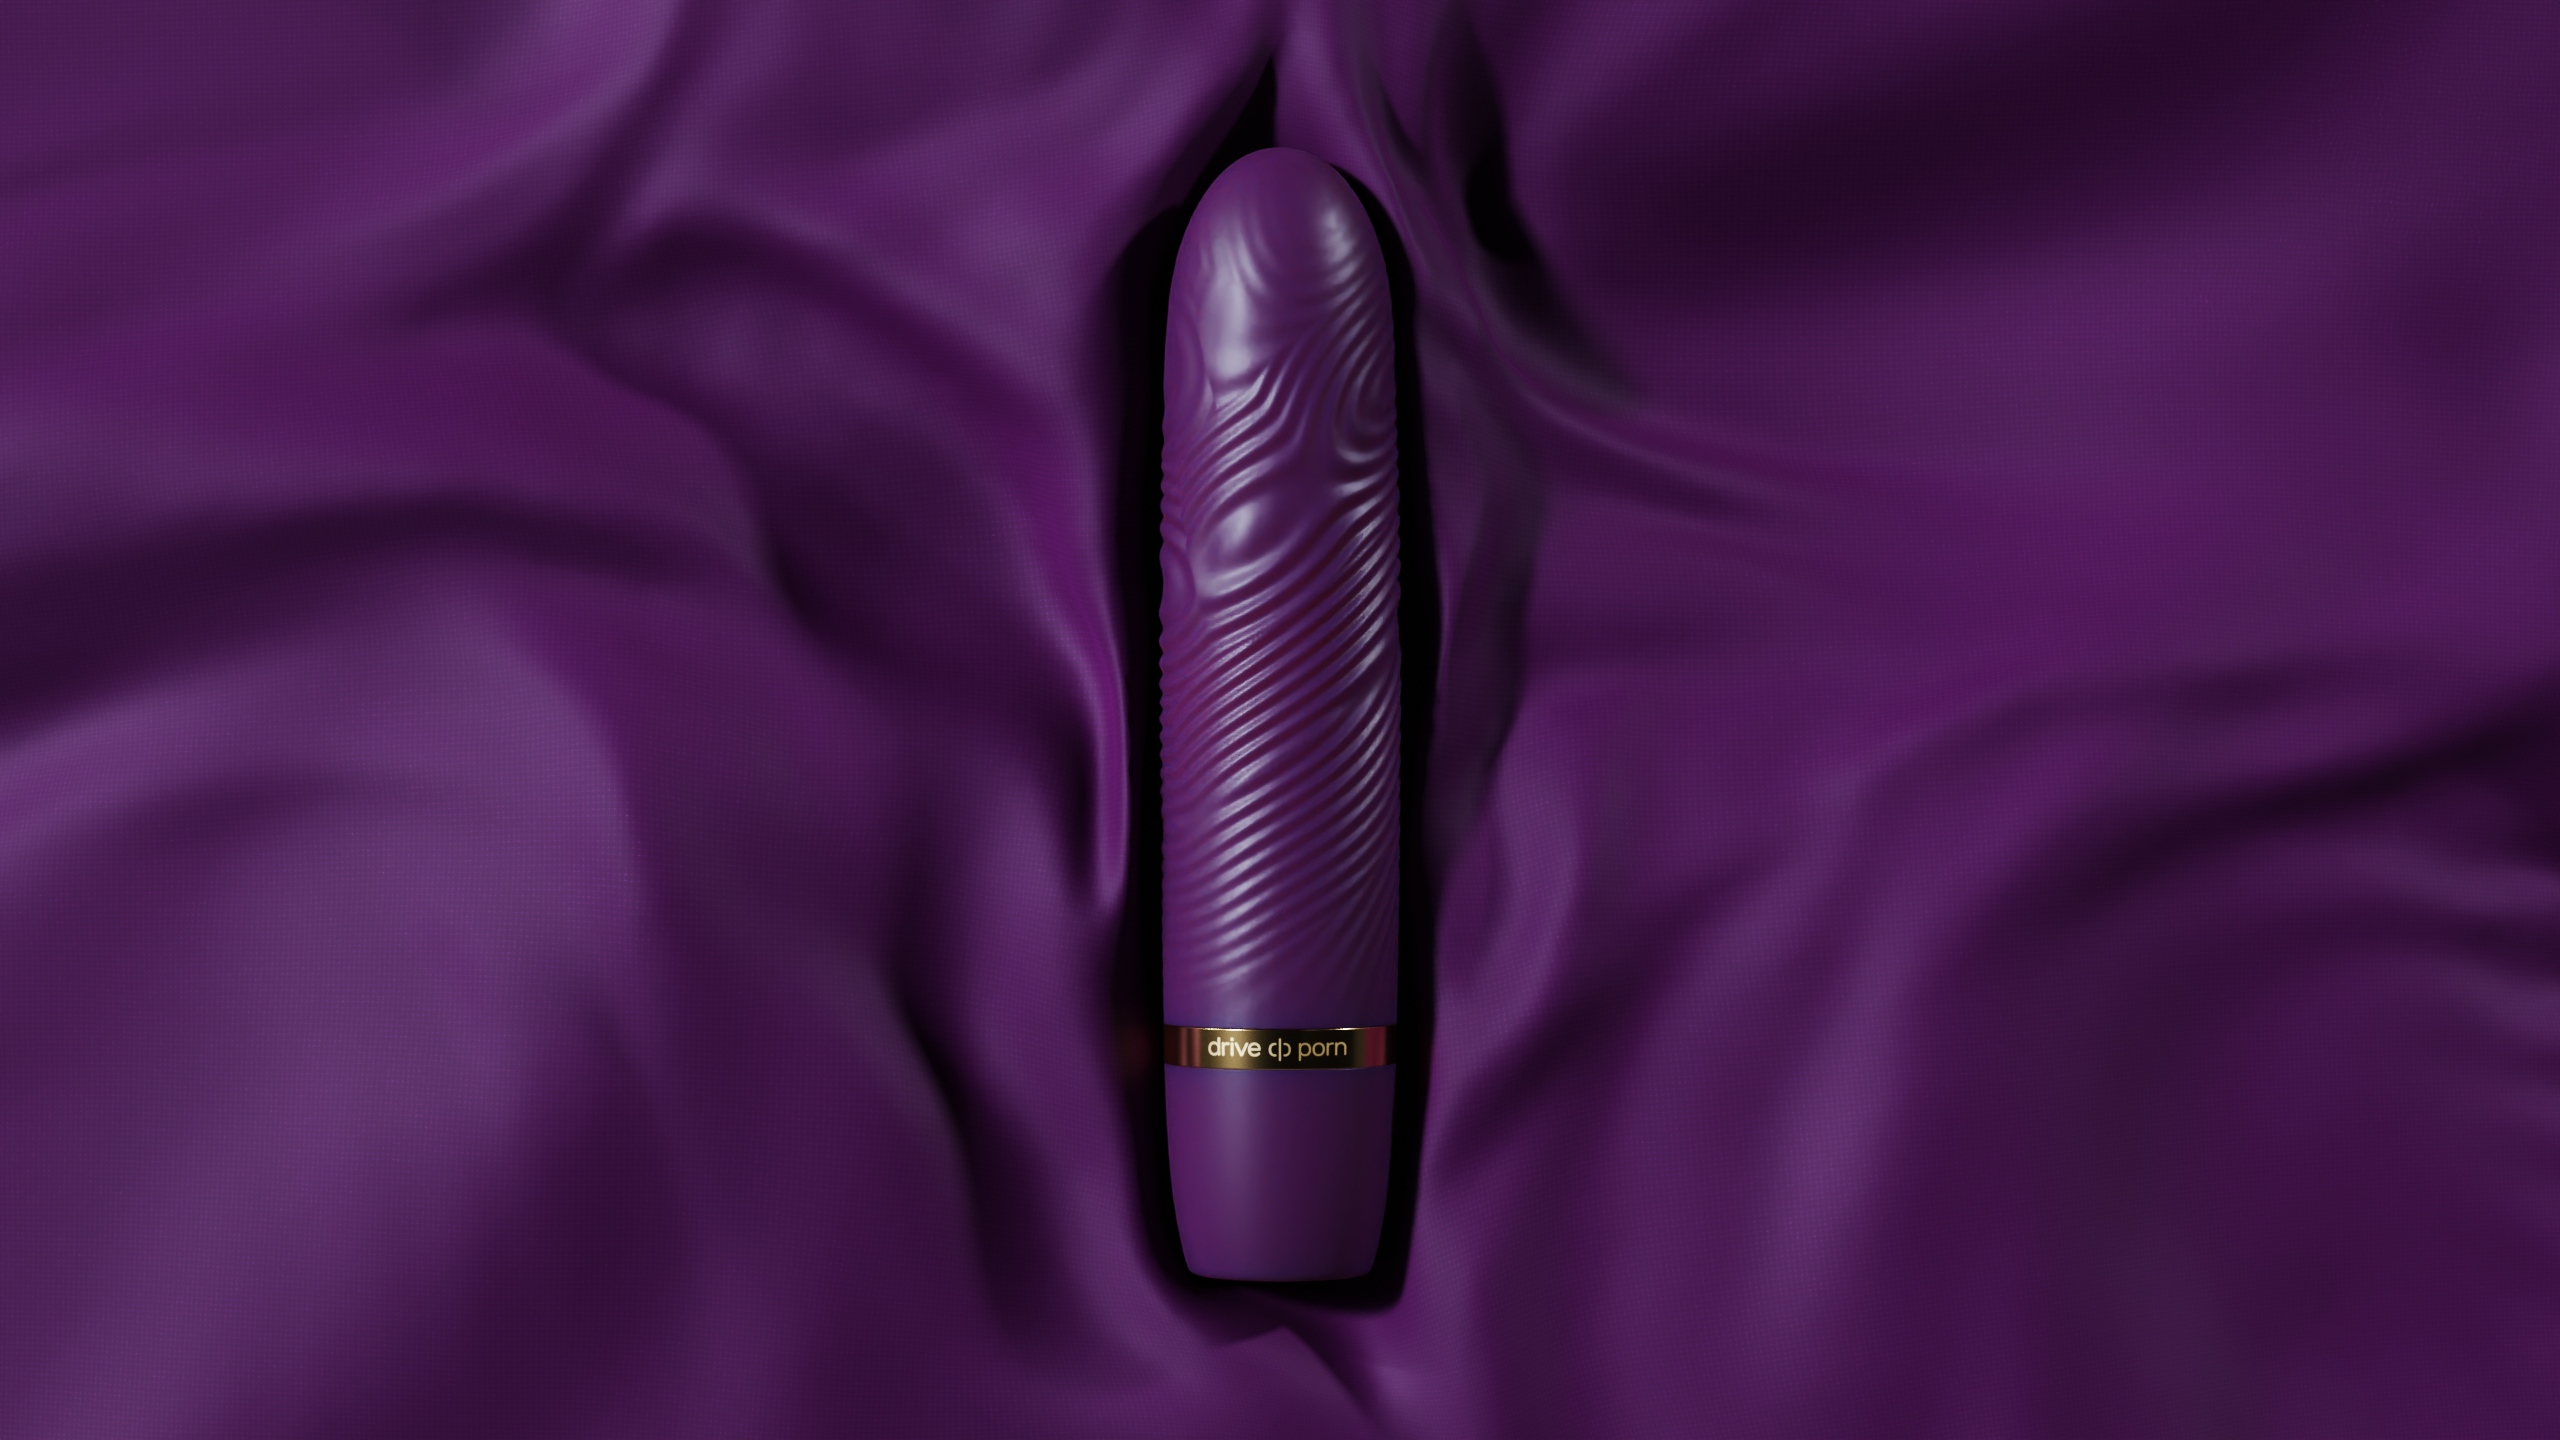 purple structured adult toy with golden text lying on purple fabric